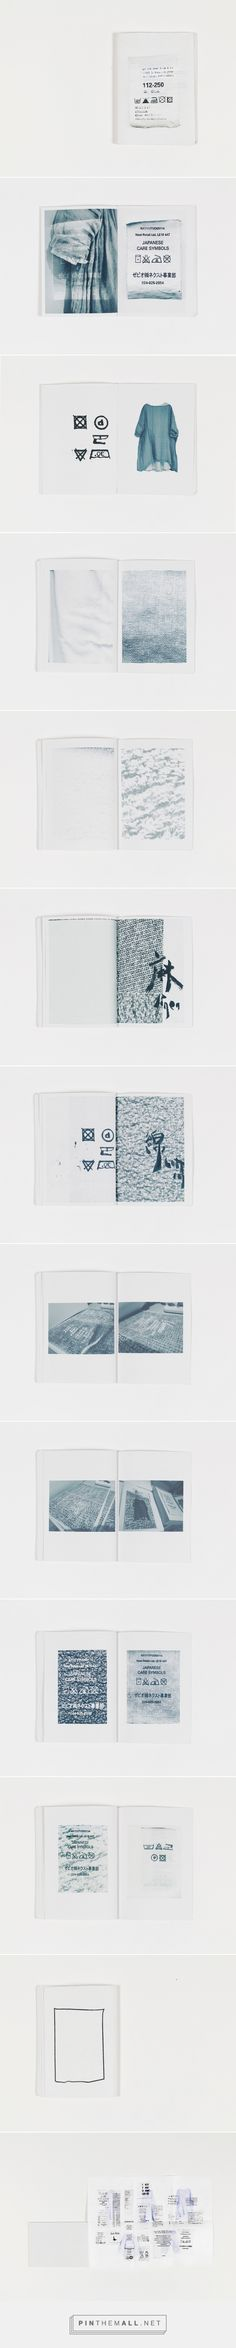 Zine / Wash Label and Fabric by Shimin Chen Typography Layout, Graphic Design Typography, Branding Design, Print Layout, Layout Design, Print Design, Editorial Layout, Editorial Design, Layout Inspiration